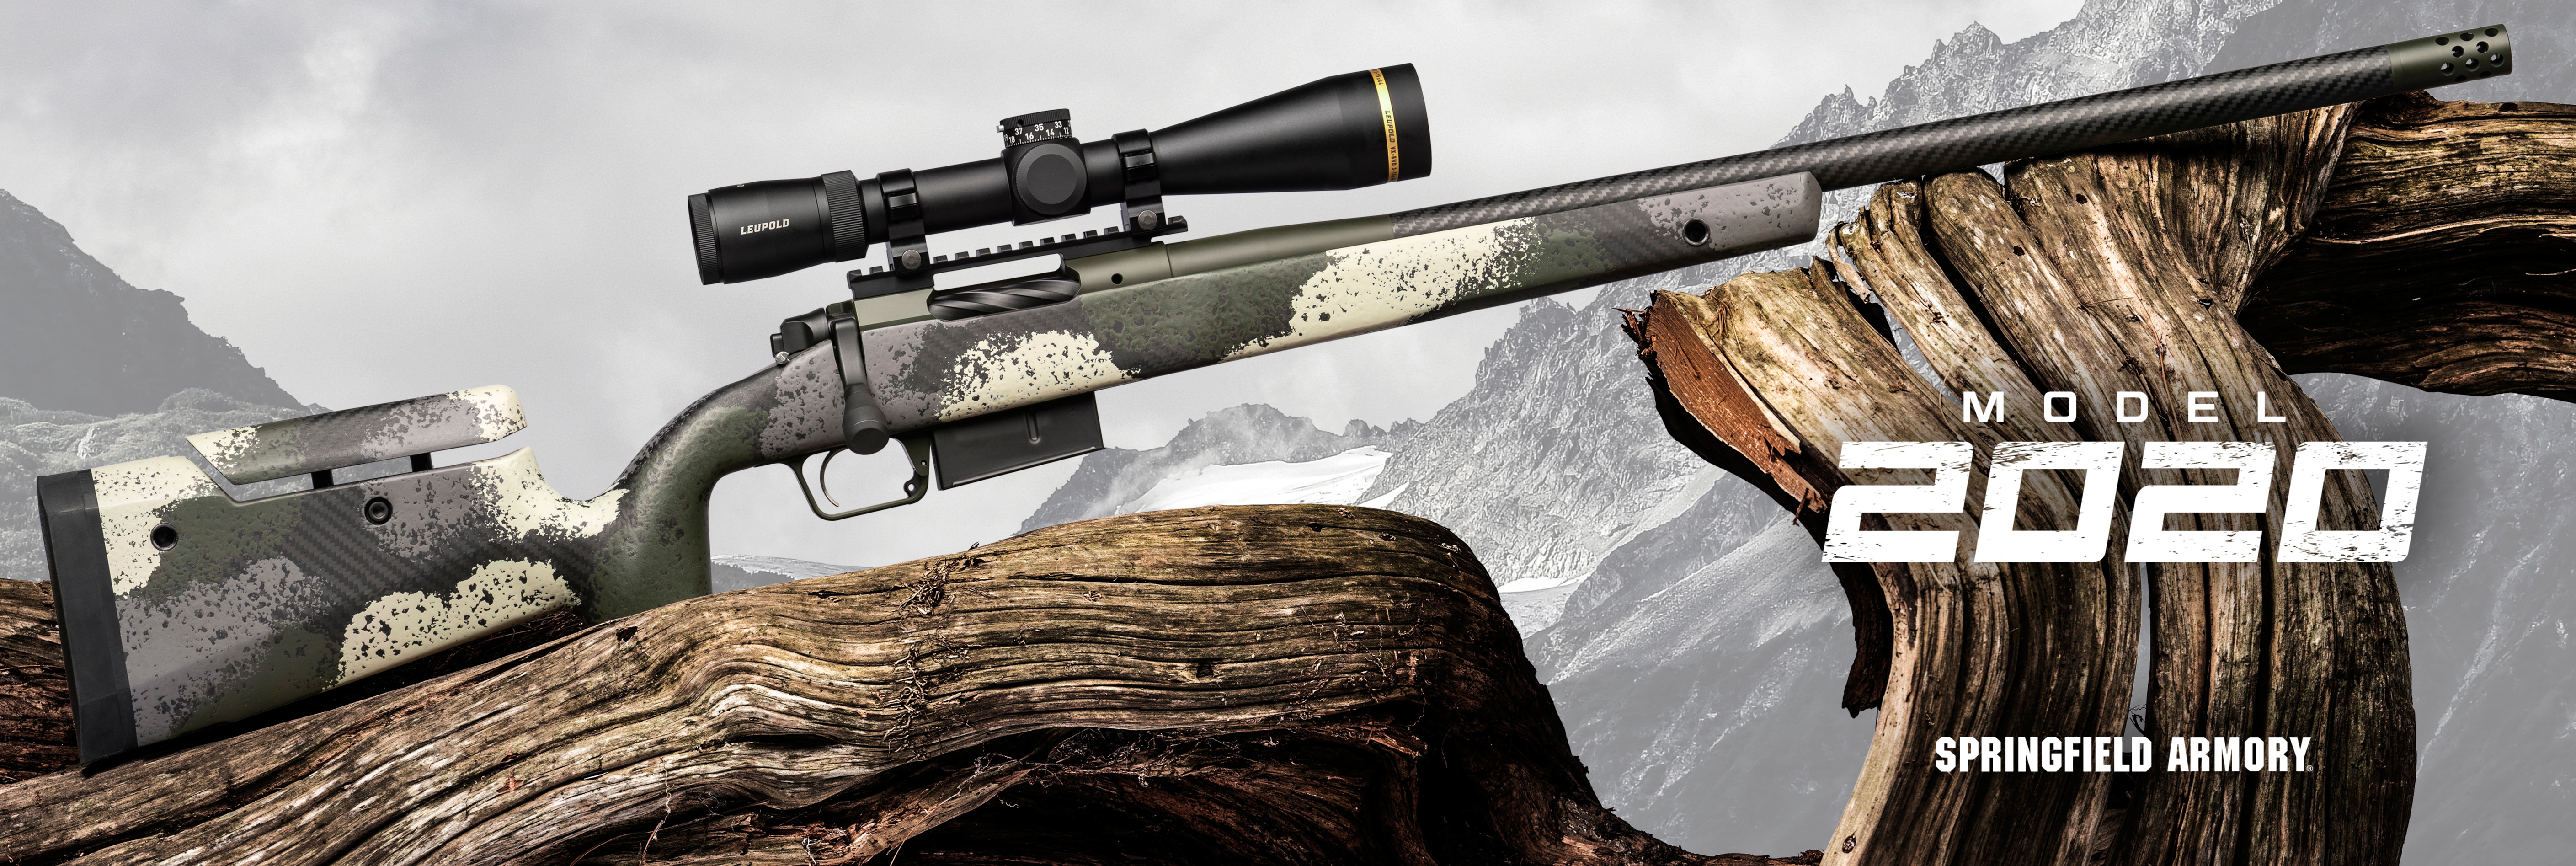 Springfield Model 2020 Waypoint Named 2021 Rifle of the Year